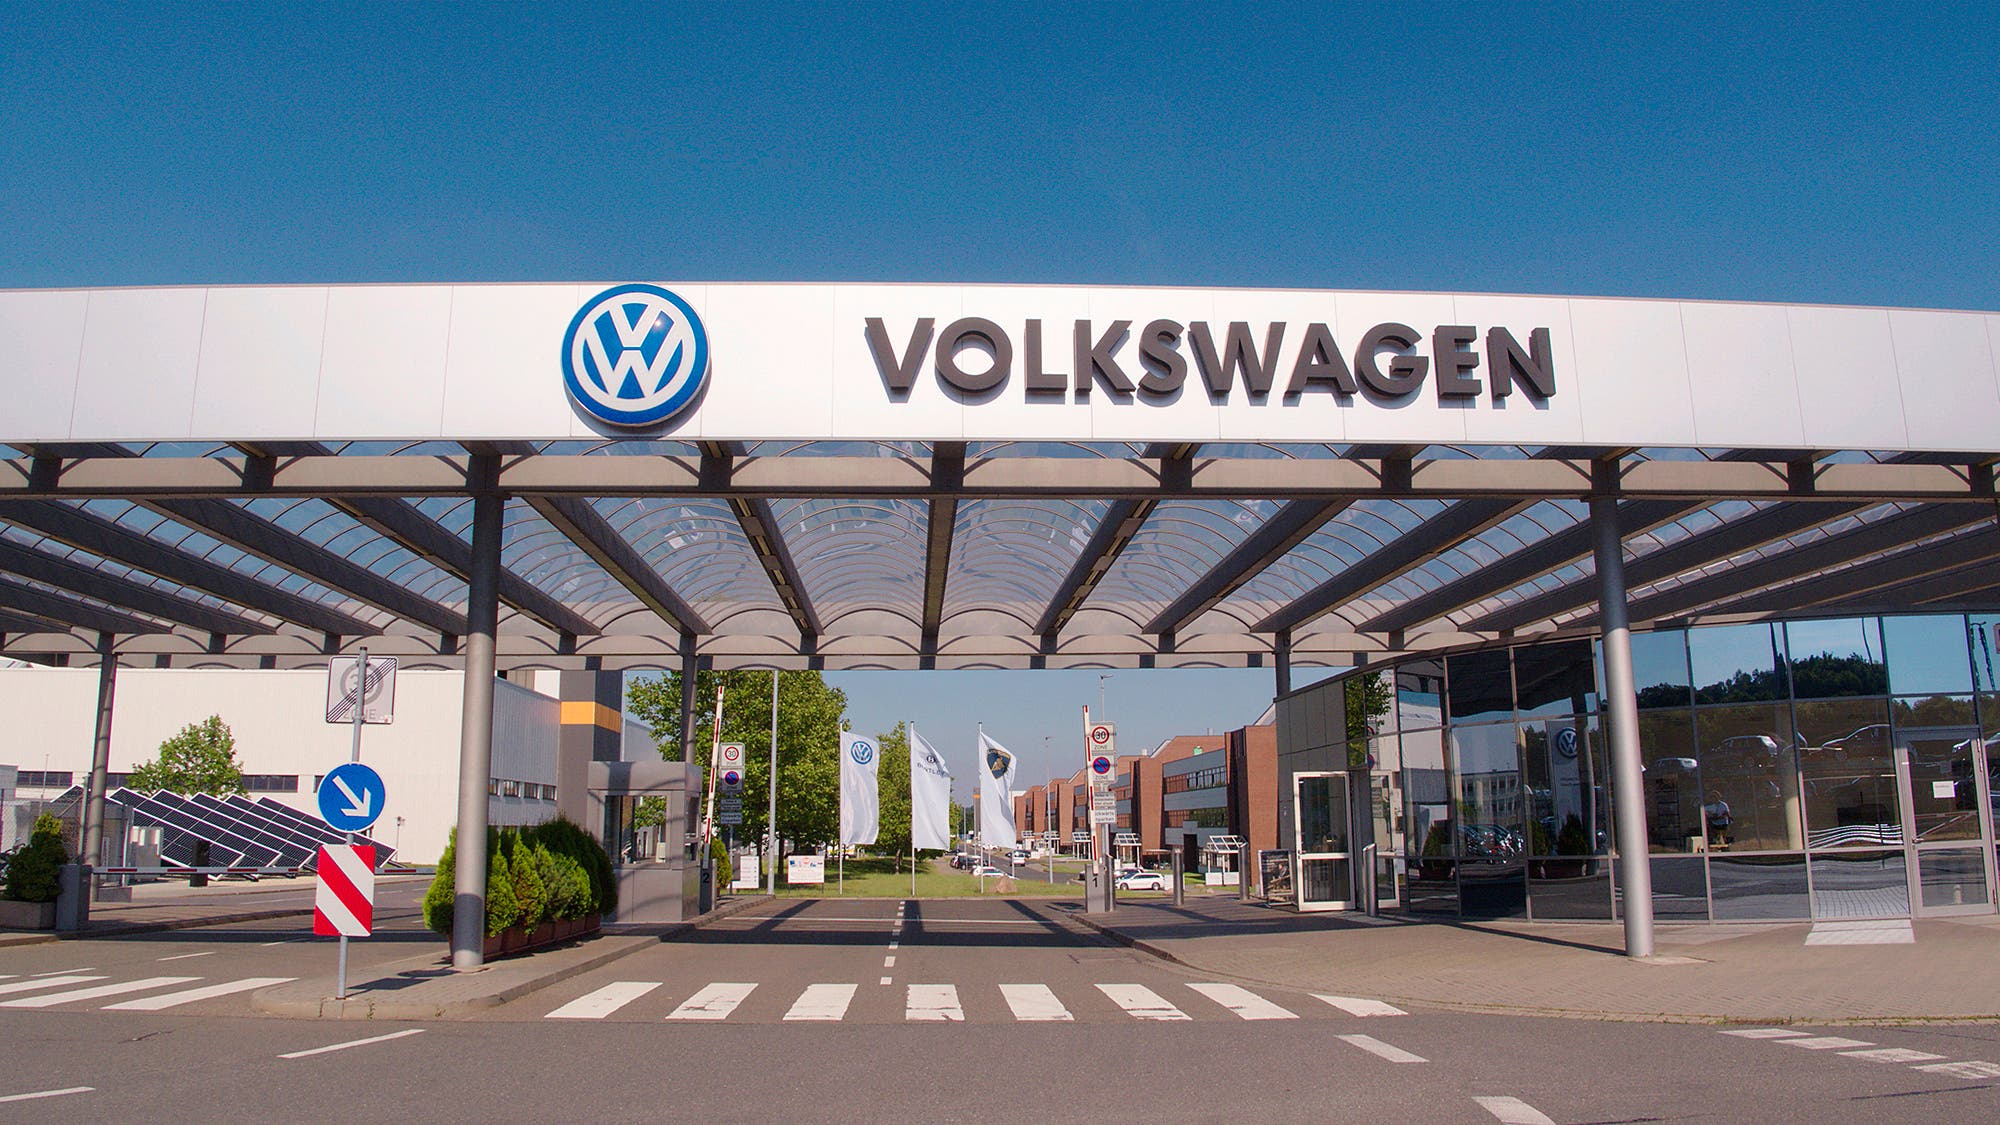 cleantechnica.com - Kyle Field - Volkswagen Converting Zwickau Automotive Plant To Produce Electric Vehicles